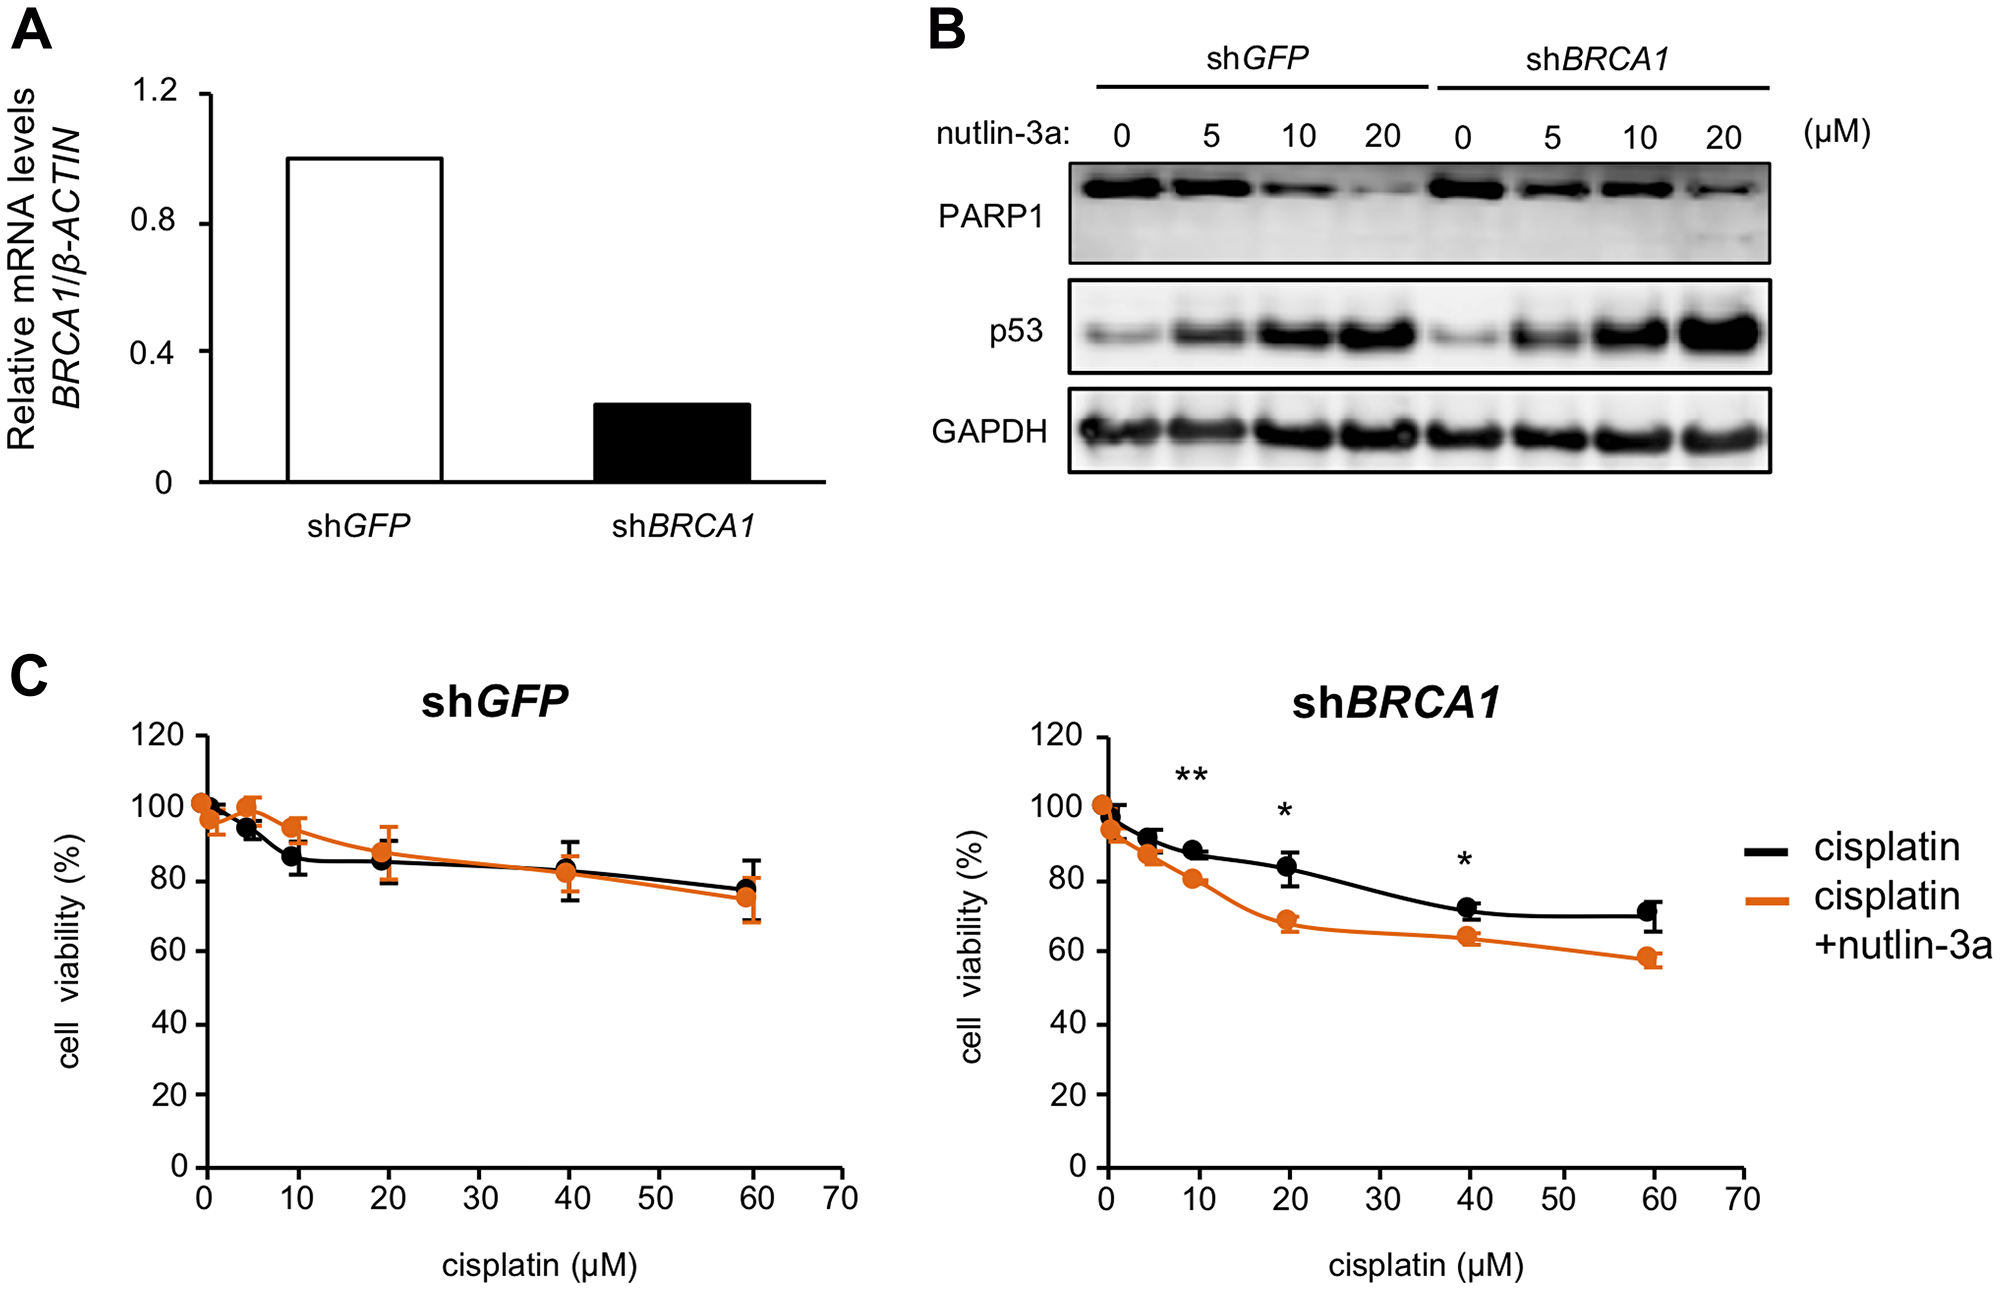 Nutlin-3a enhances the effect of cisplatin in BRCA1 knockdown MCF-7 cells.